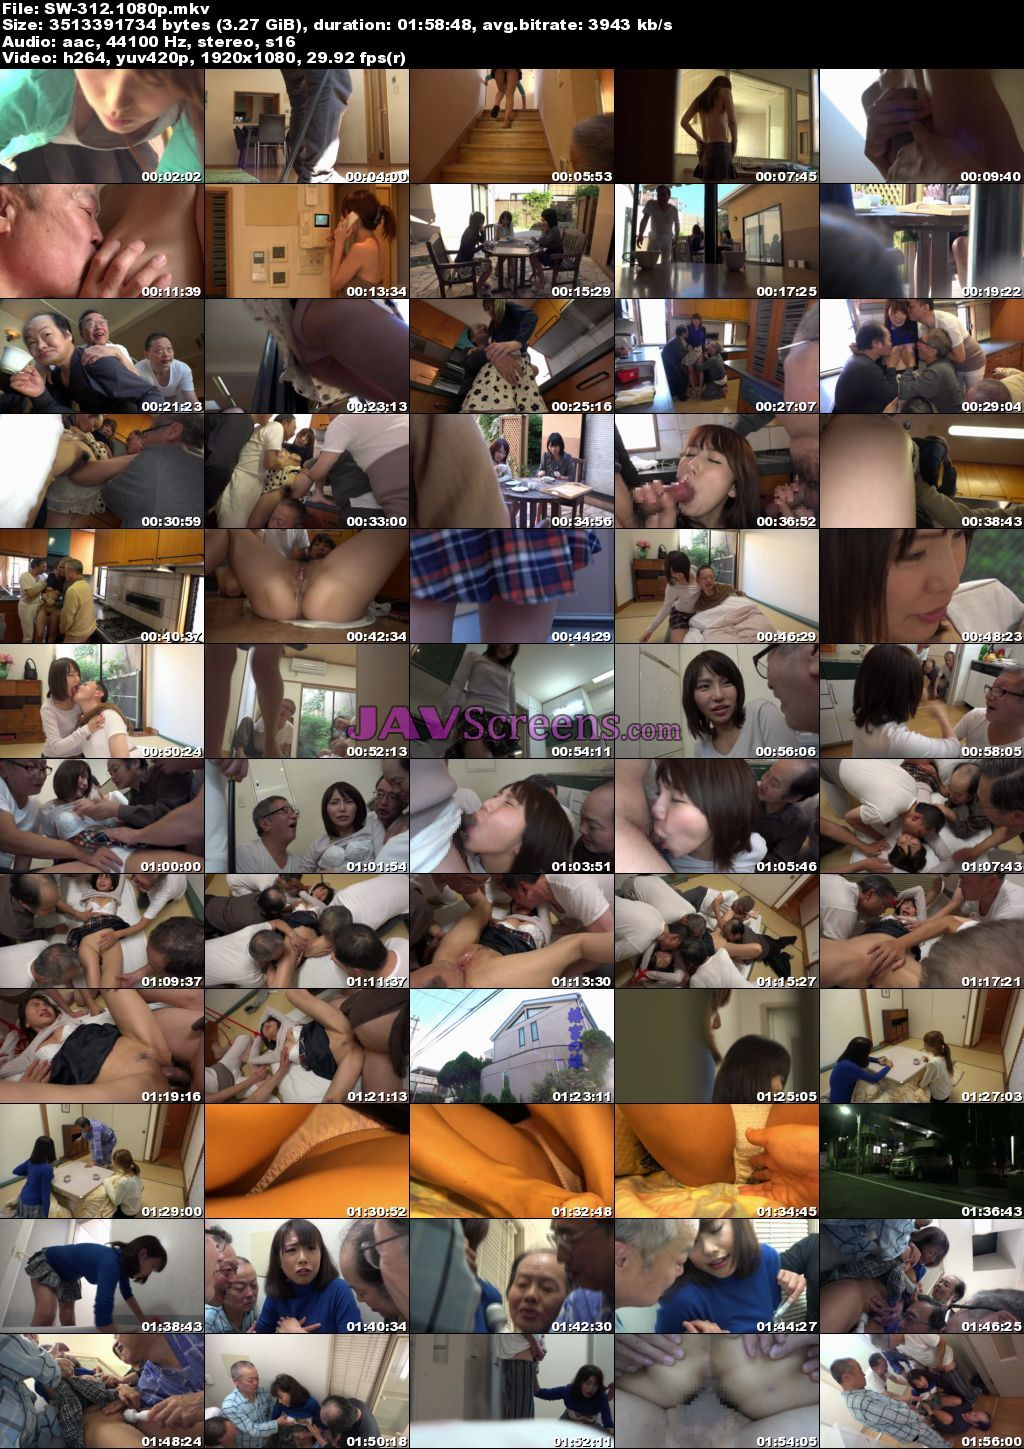 SW-312.jpg - JAV Screenshot